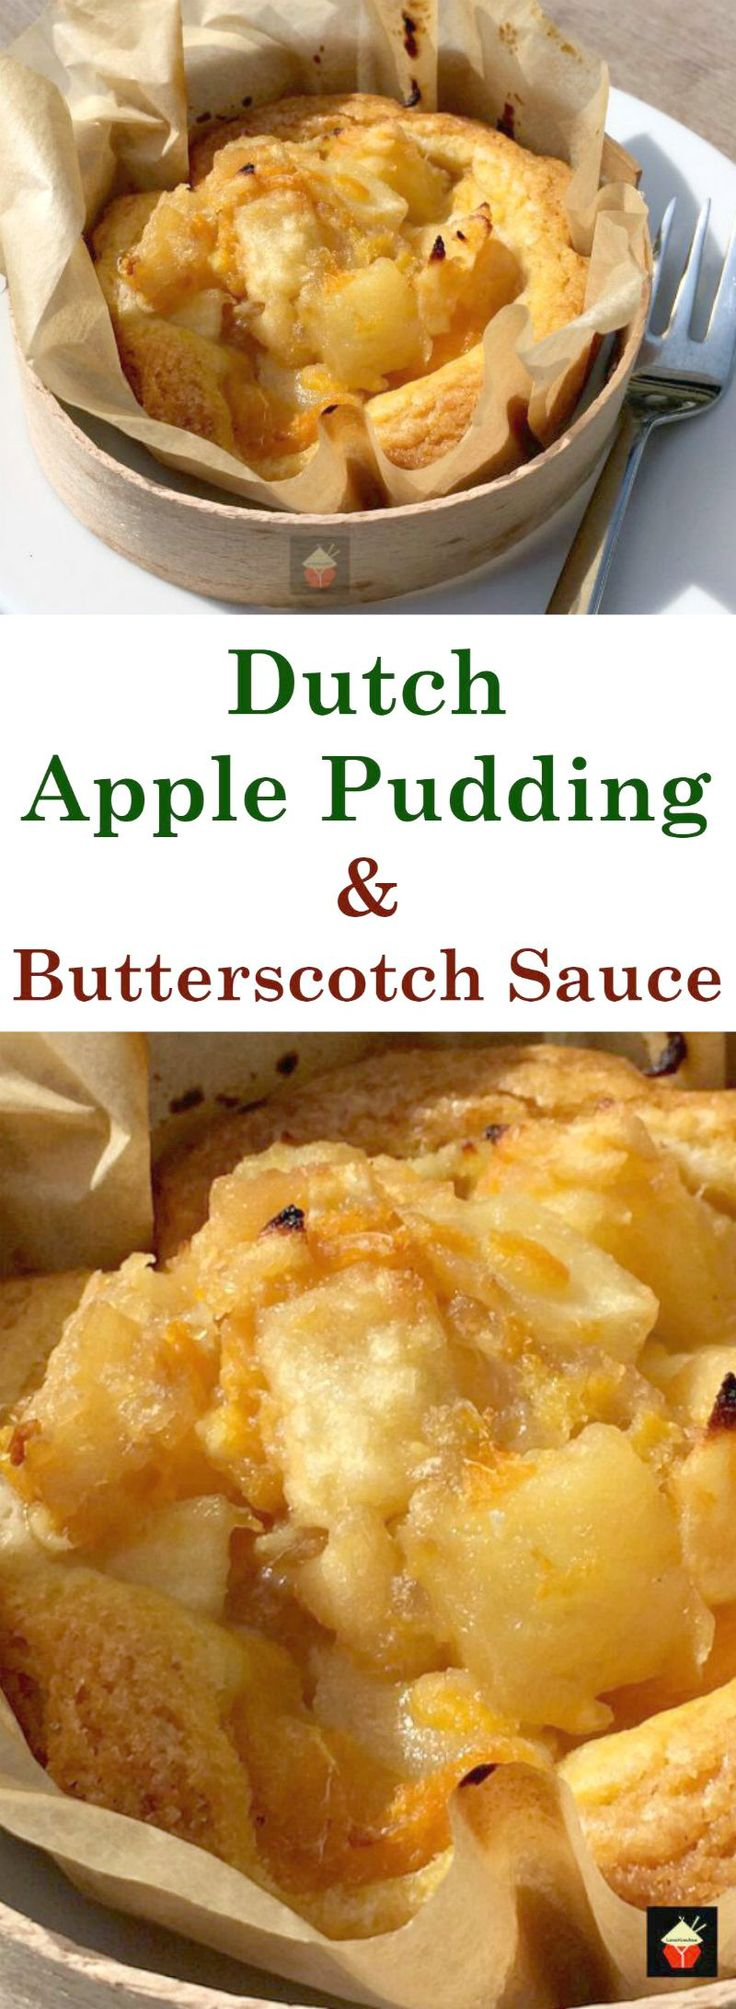 Dutch Apple Pudding with Butterscotch Sauce, this is a delicious dessert. A soft and fluffy cake filled with chunks of apple, and a sprinkle of cinnamon. Served with a drizzle of warm butterscotch sauce. So Yummy!